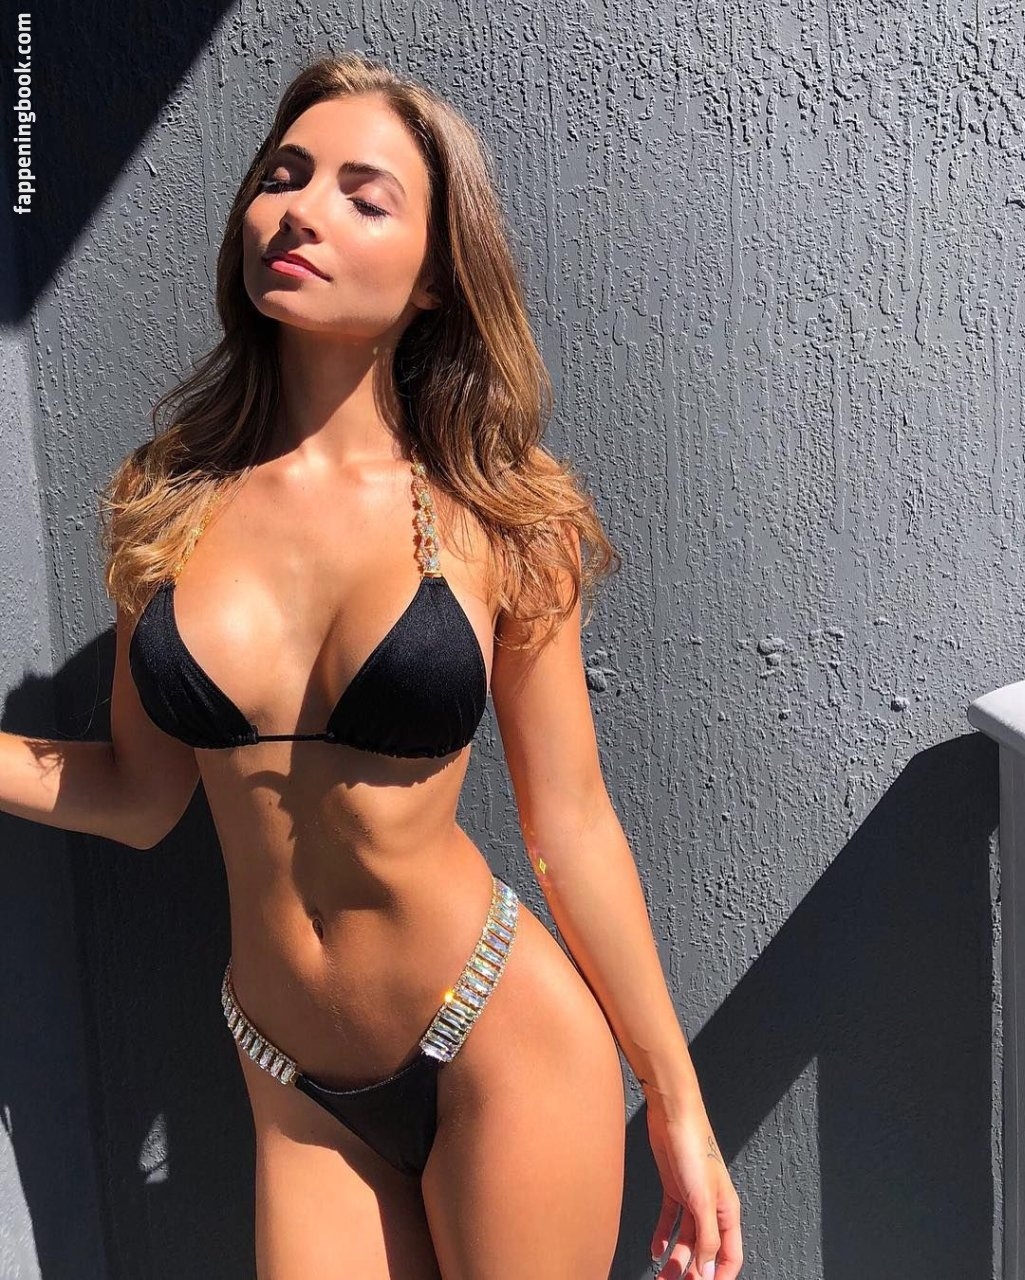 Anna Louise Nude, Sexy, The Fappening, Uncensored - Photo